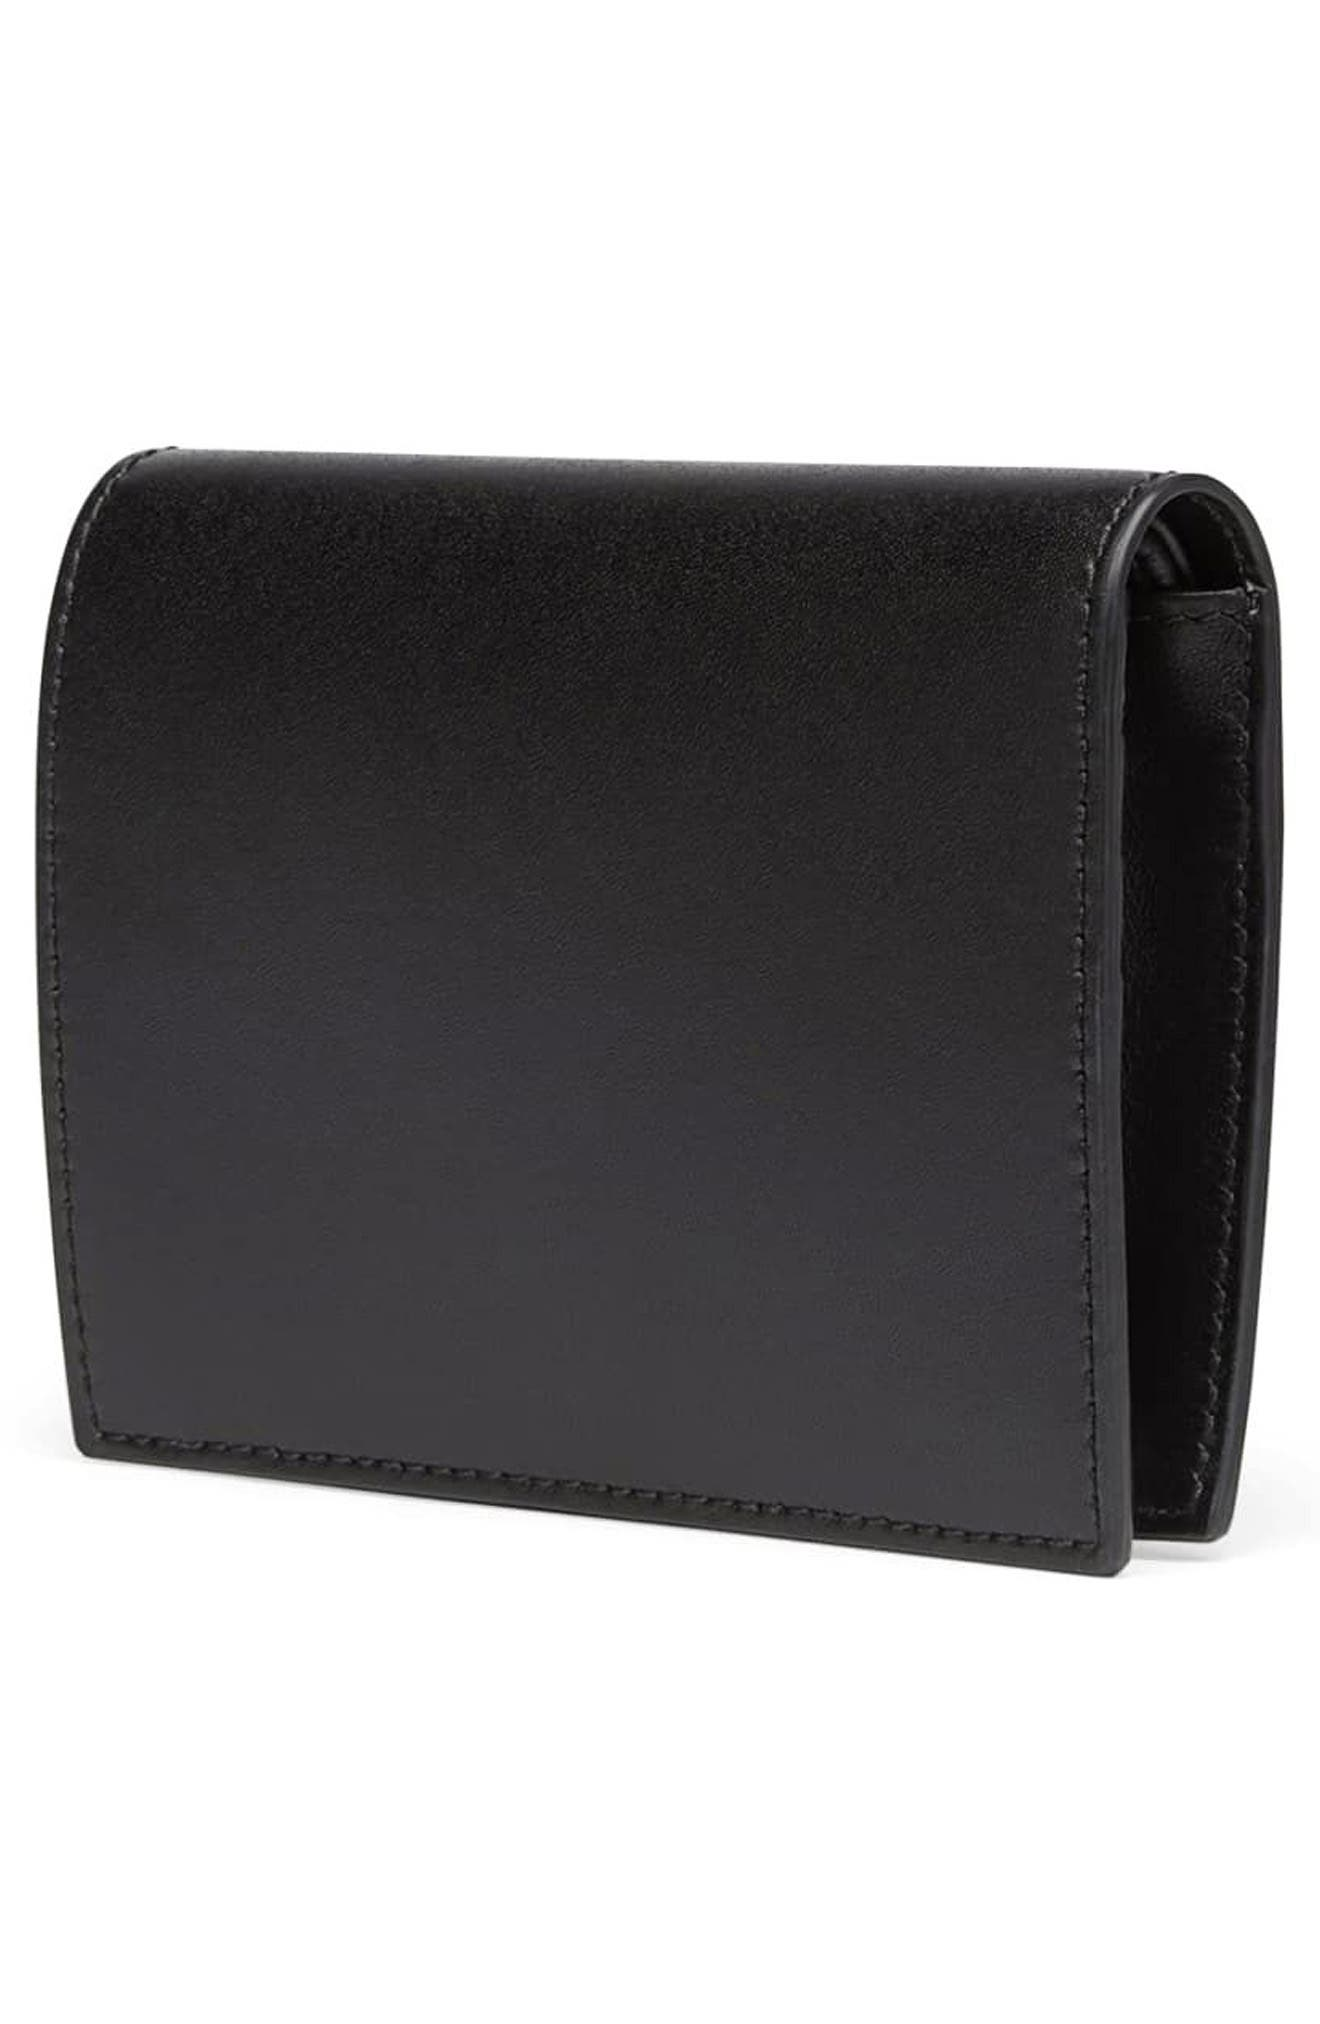 Logo Small Leather French Wallet,                             Alternate thumbnail 3, color,                             NERO/ ORO SOFT